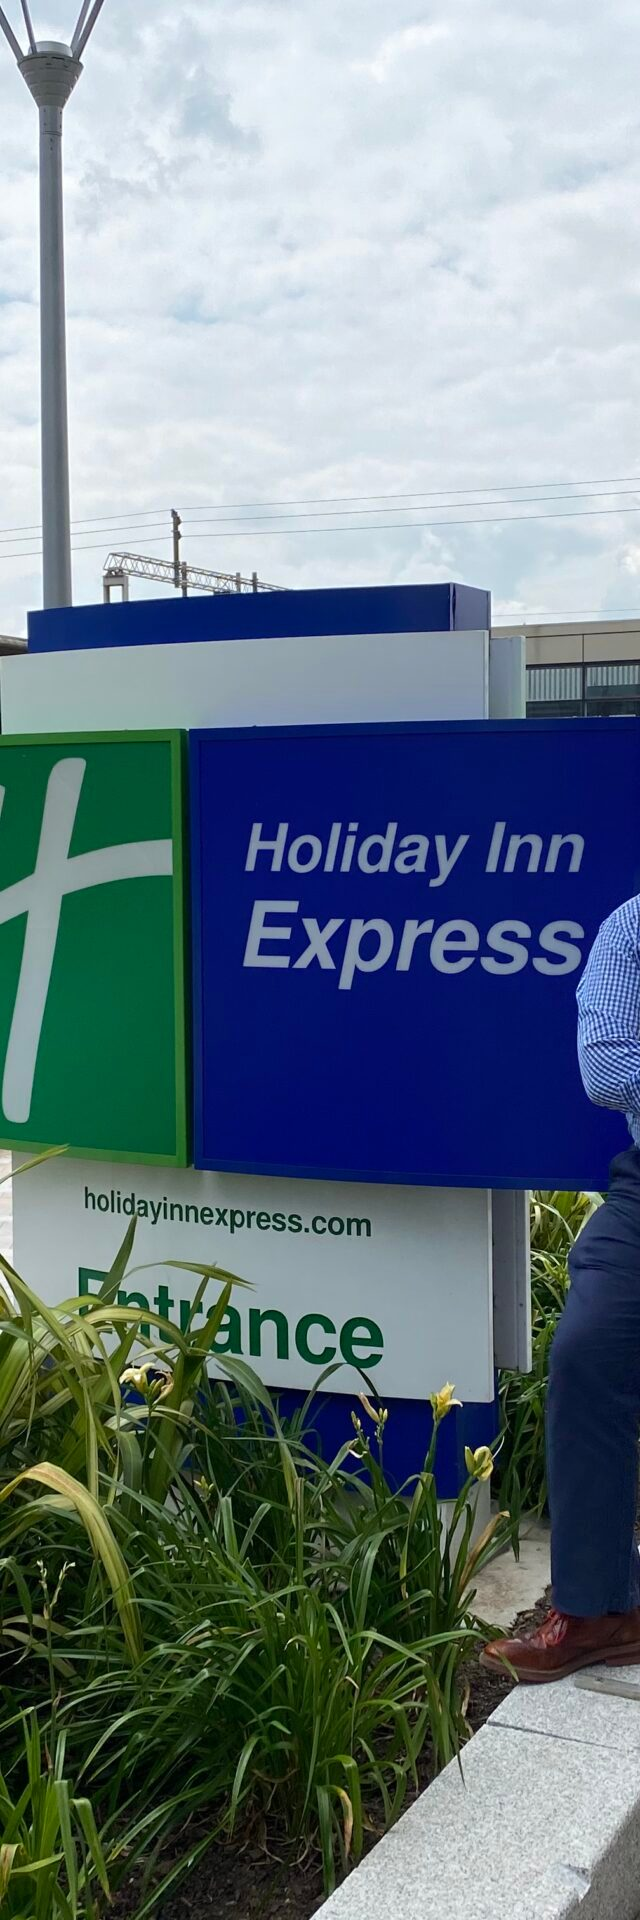 Holiday Inn Express Stockport reopened for all customers